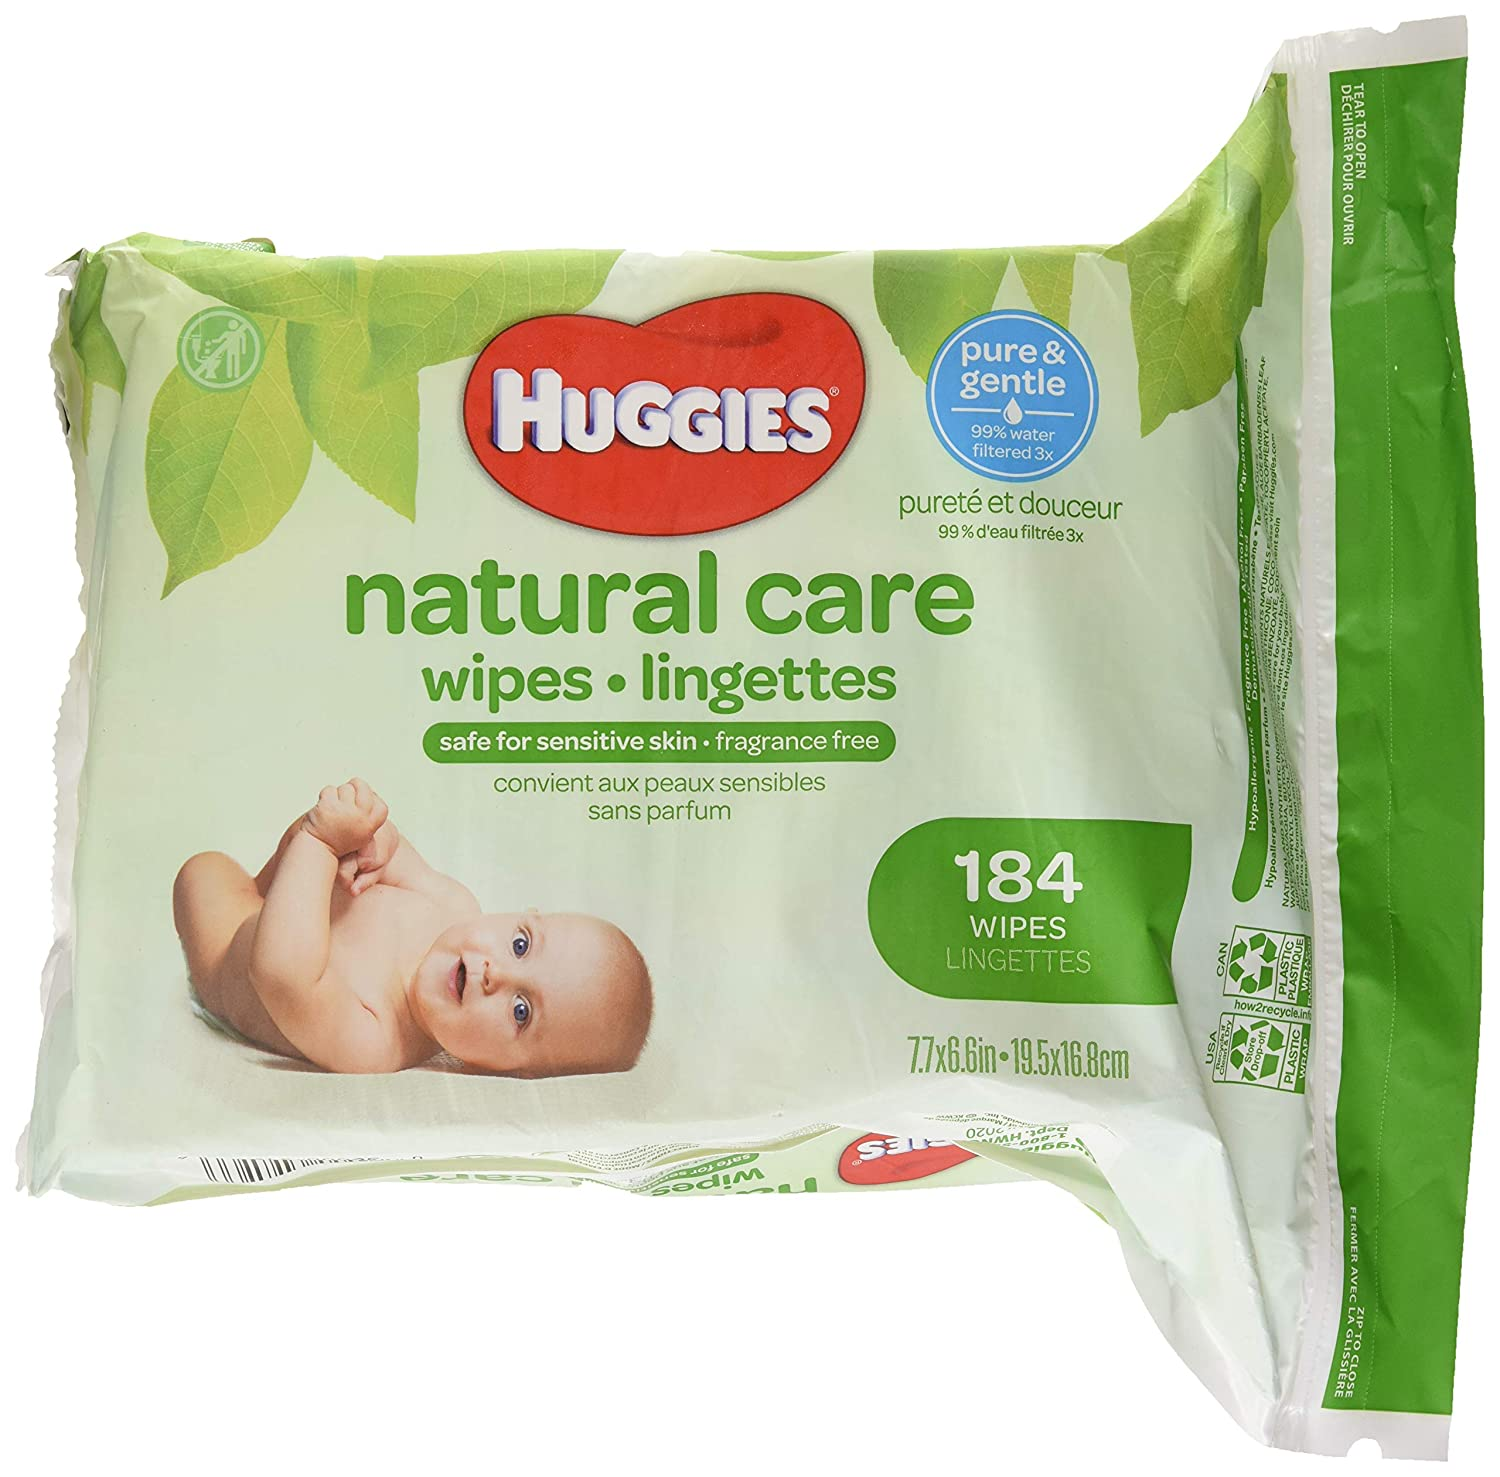 HUGGIES NATURAL CARE Fragrance-Free & Hypoallergenic Baby Wipes (Refill Pack, 184 Count) Kimberly-Clark Corp. CA 31816